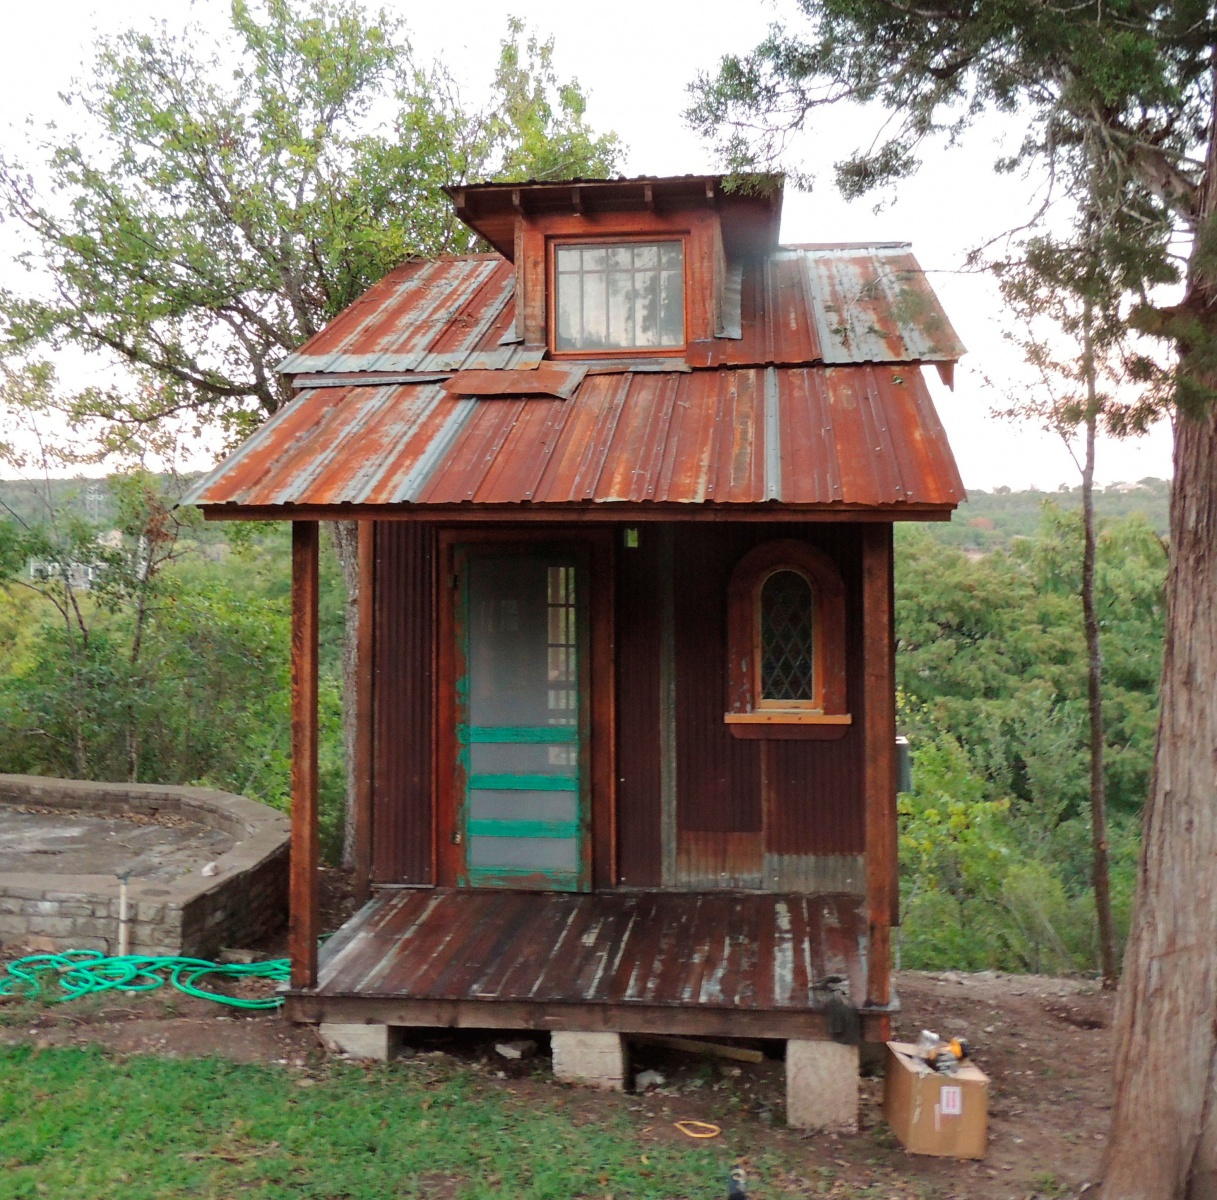 Tiny texas houses 39 recent work the shelter blog for Texas small homes